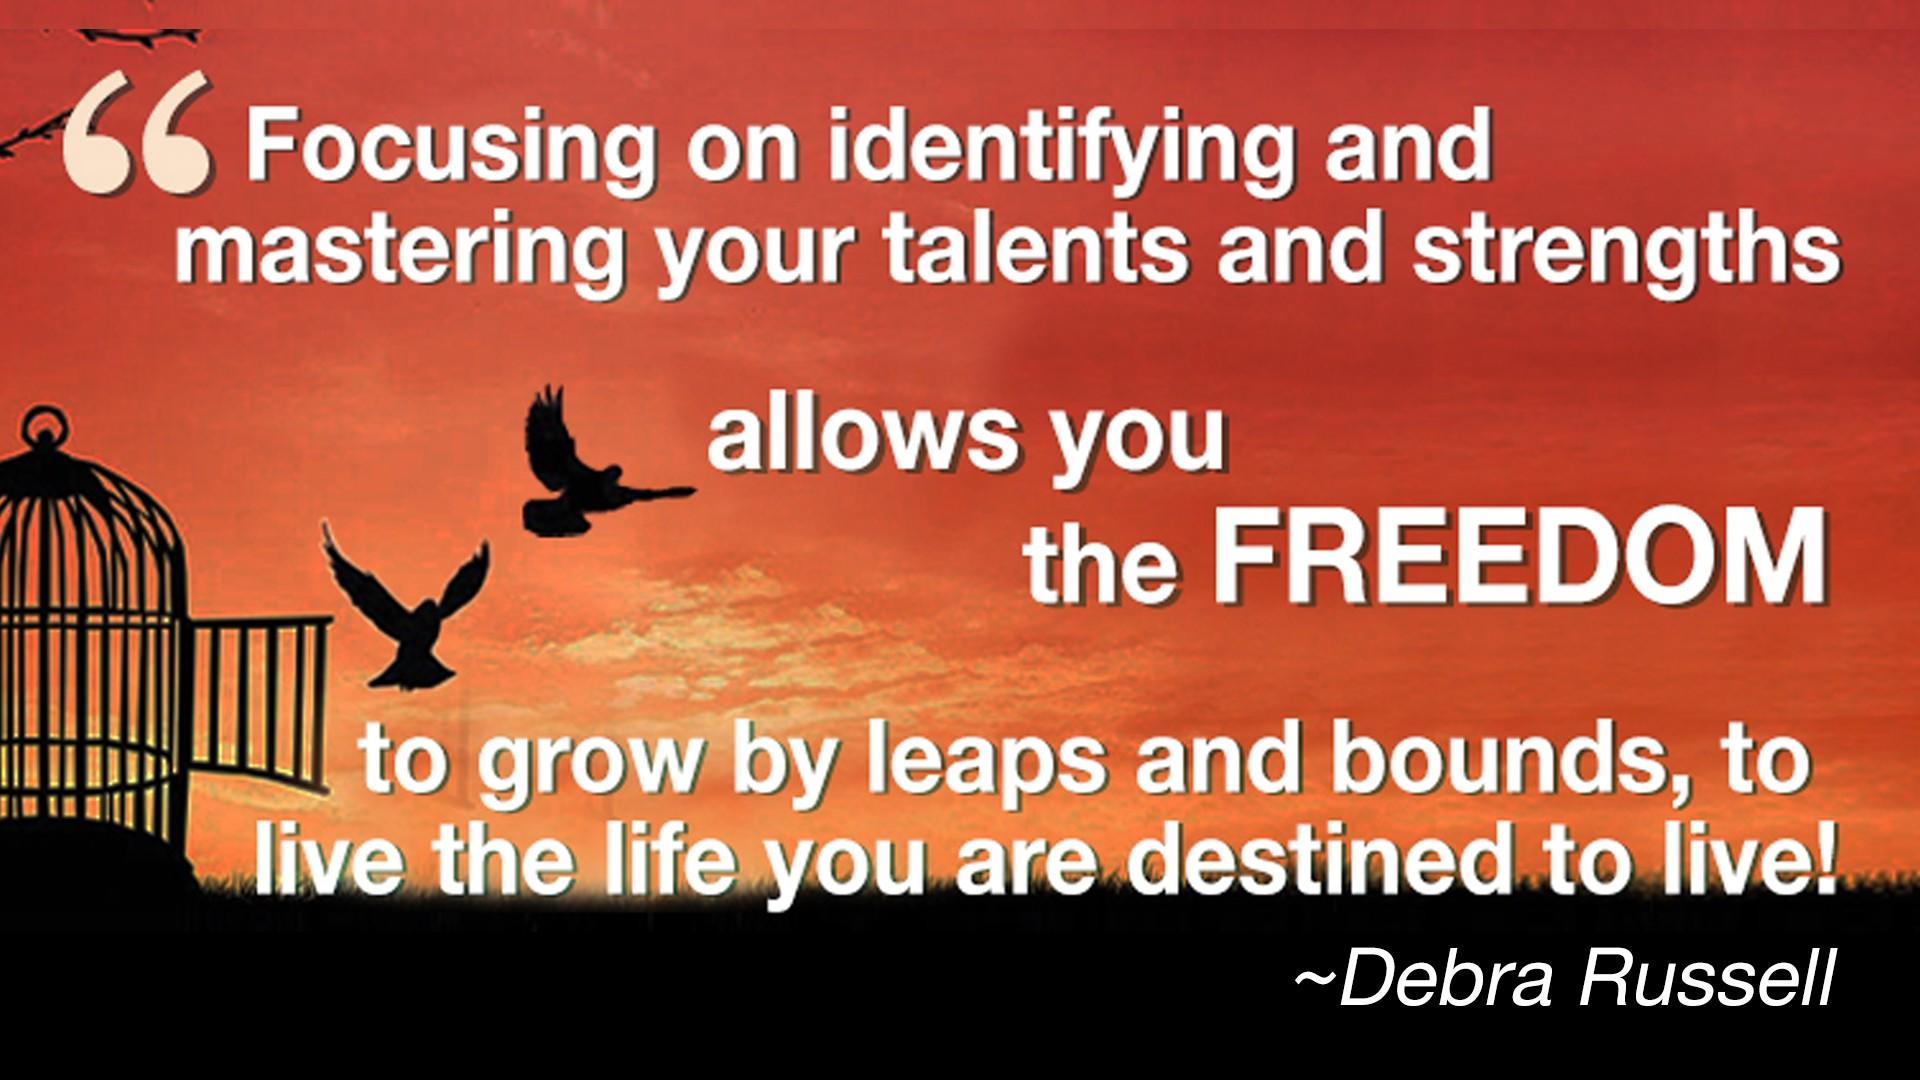 Debra Russell Quote - Focusing on identifying and mastering your talents and strengths allows you the freedome to grow by leaps and bounds, to live the life you are destine to live.